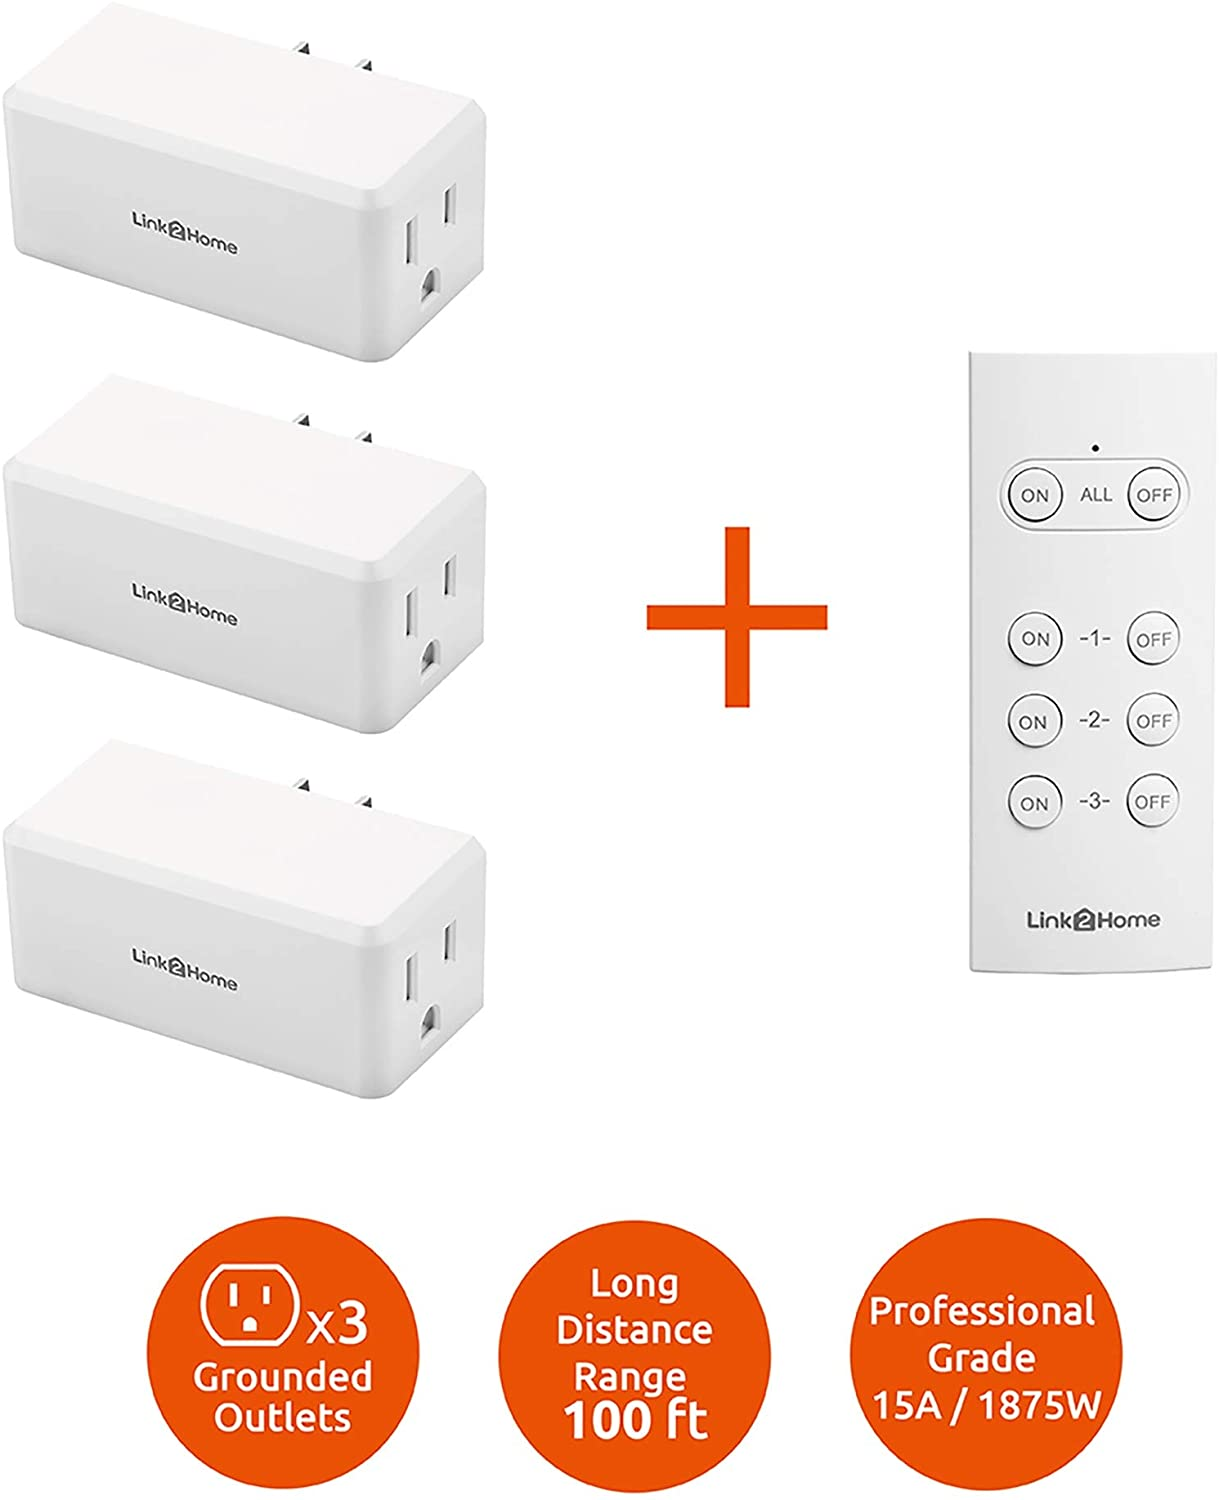 Link2Home Wireless Remote Control Outlet Light Switch, 100 ft range, Unlimited Connections. Compact Side Plug. Switch ON/OFF Household Appliances. FCC CSA Certified, White (3 Outlets, 1 Remote).